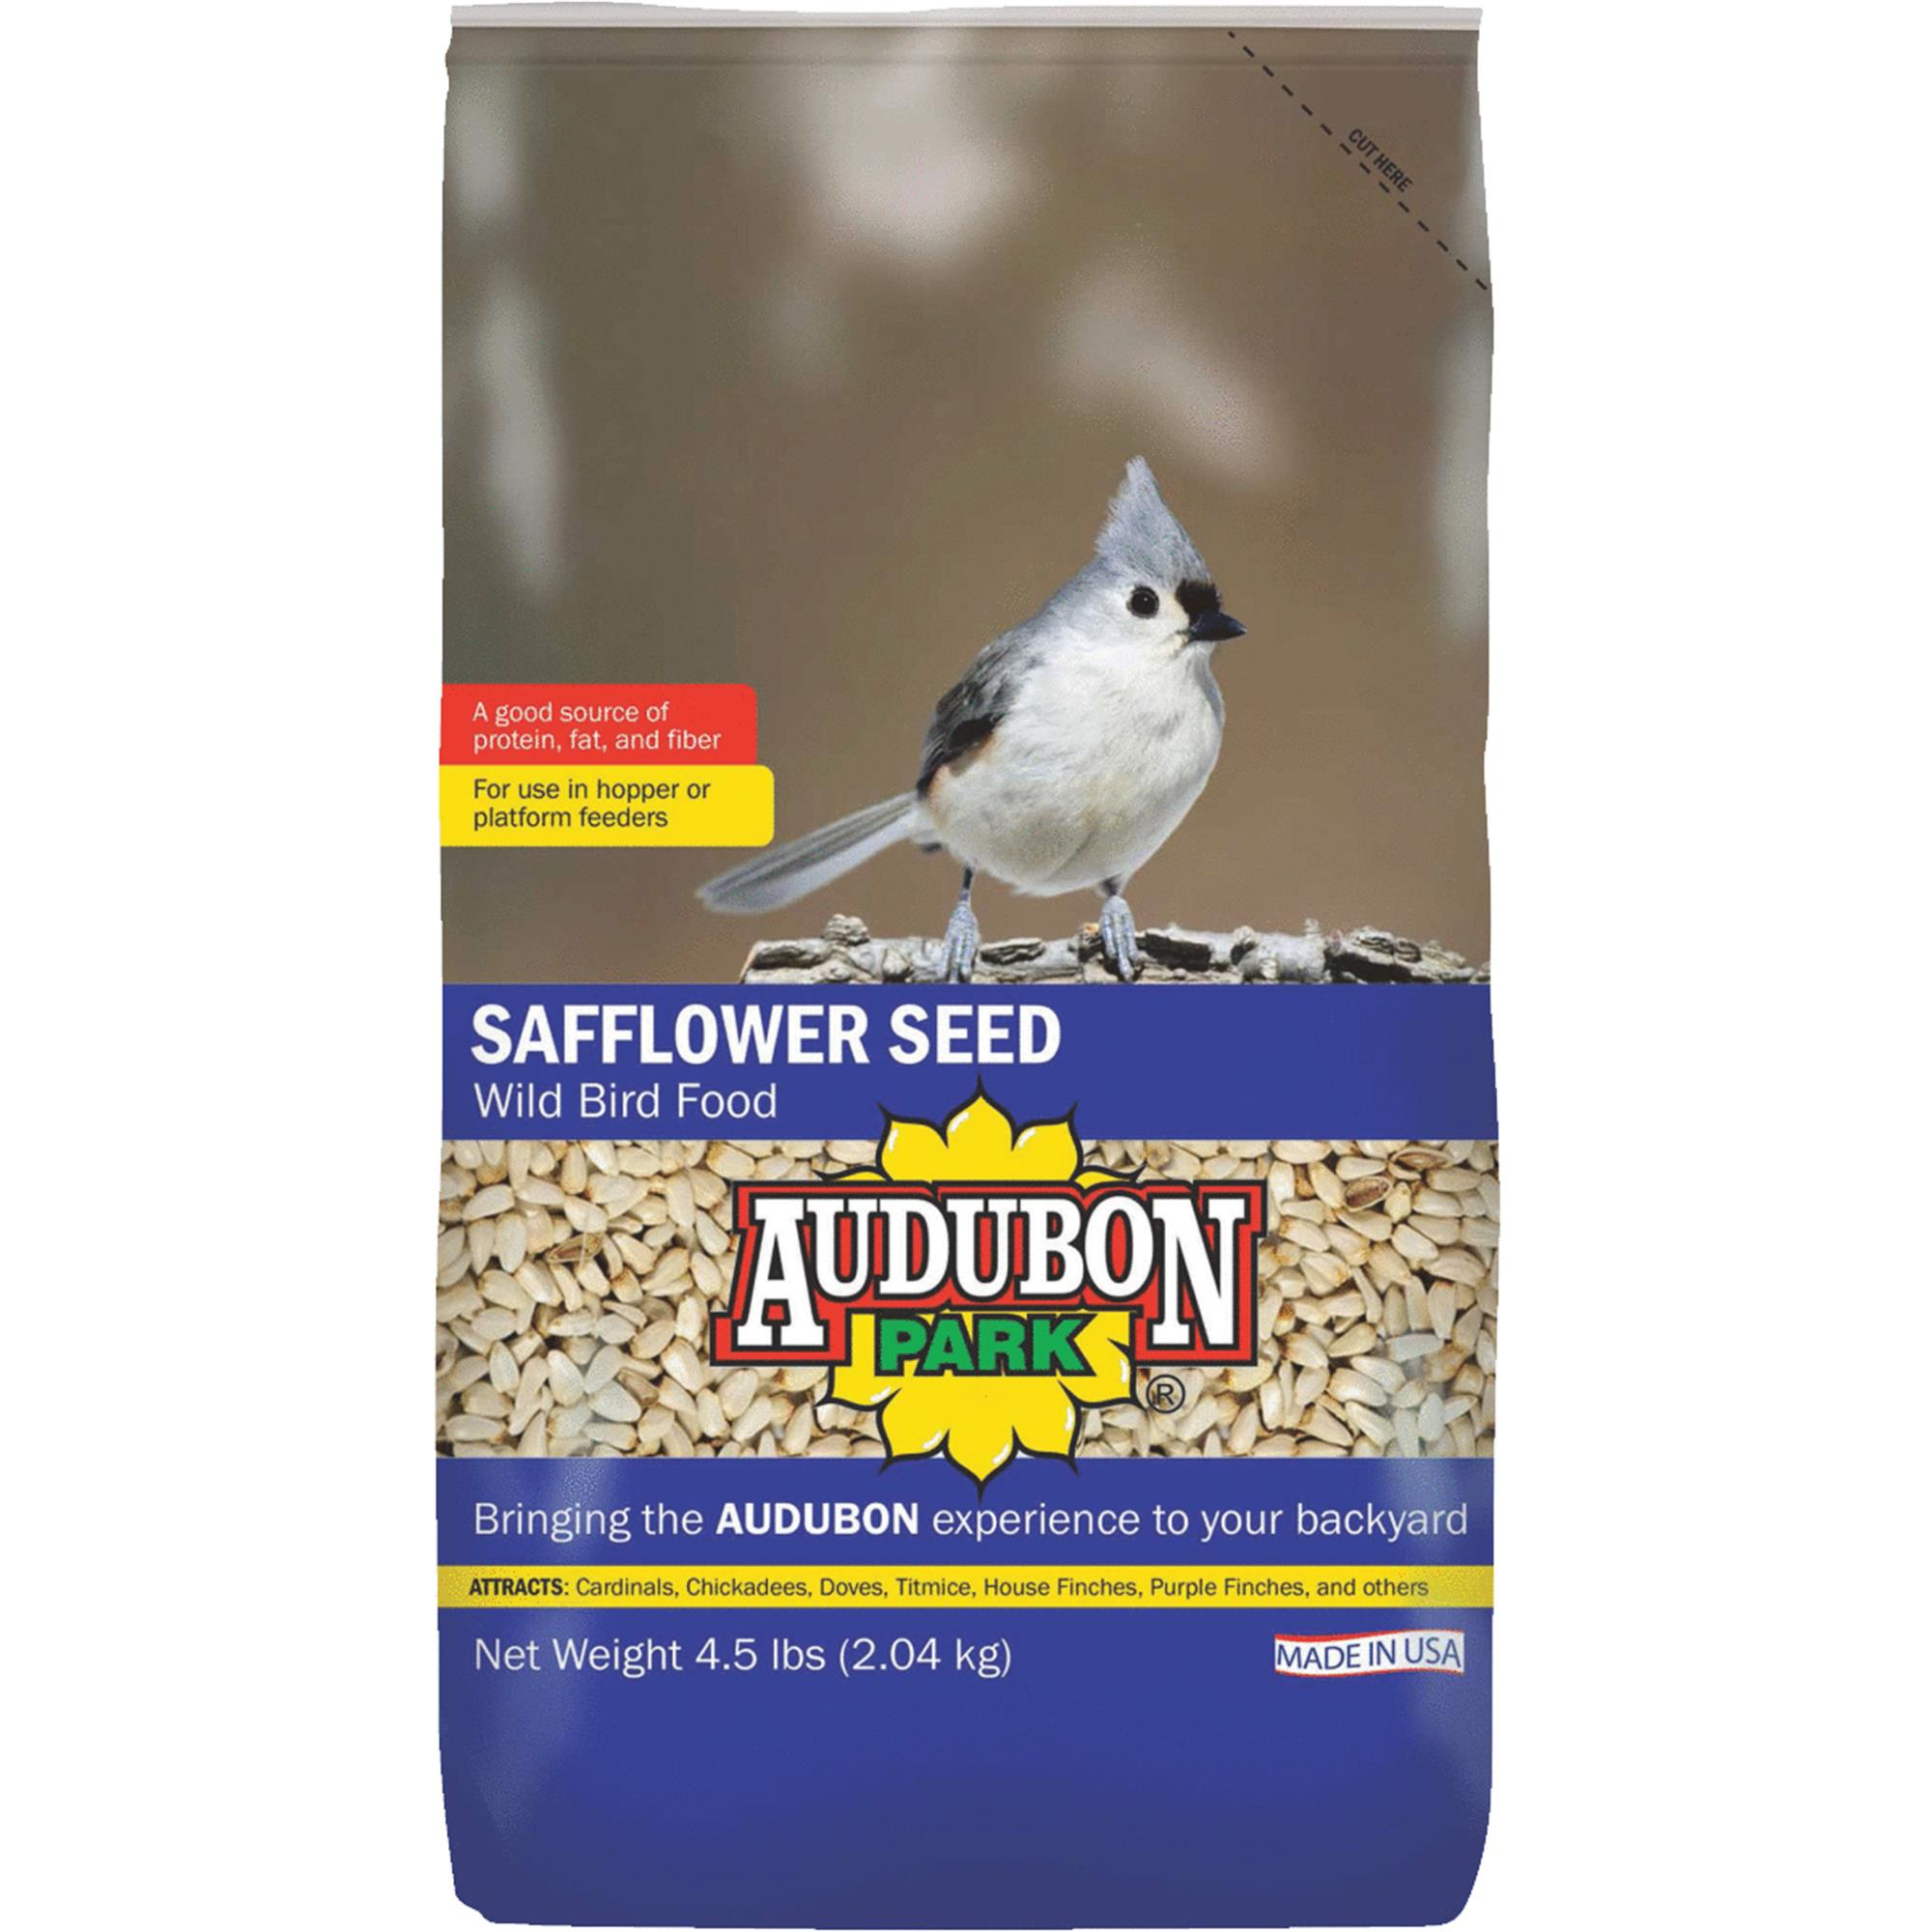 Audubon Park Safflower Seed Wild Bird Food by Global Harvest Foods